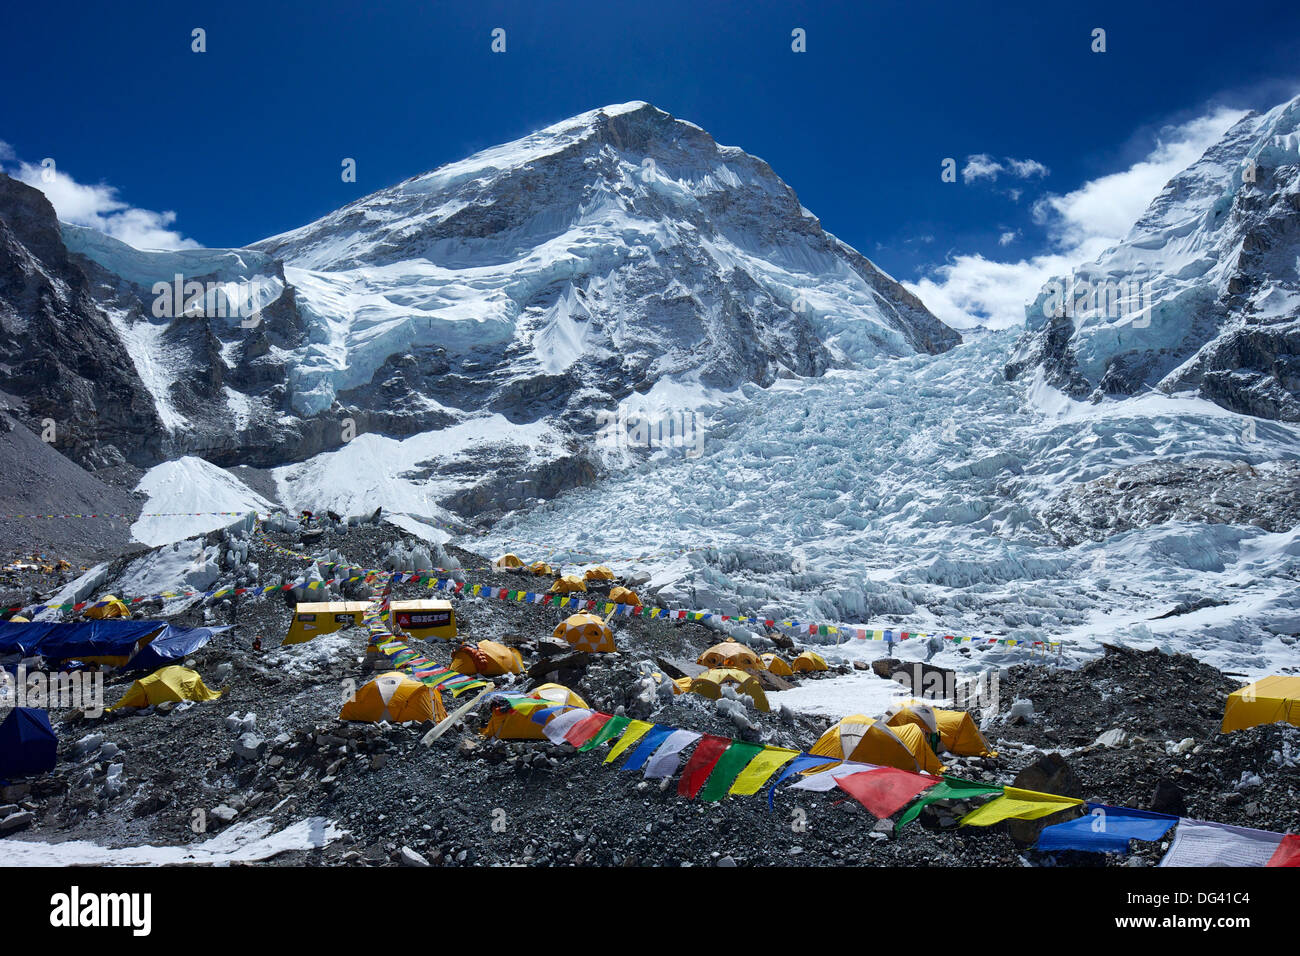 Khumbu icefall from Everest Base Camp, Solukhumbu District, Sagarmatha National Park, UNESCO Site, Nepal, Himalayas - Stock Image